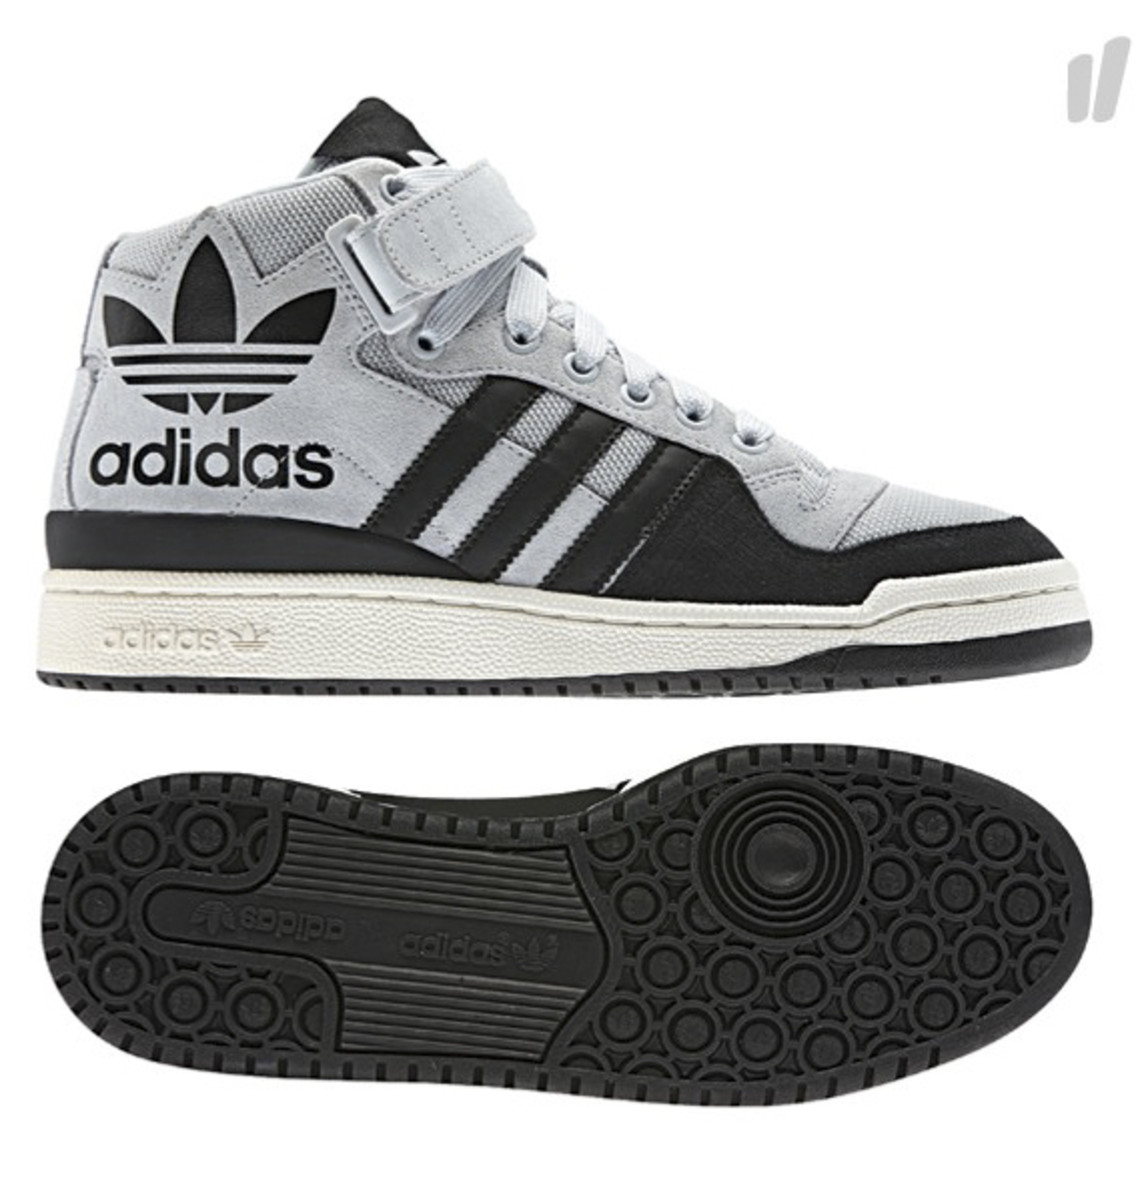 adidas-originals-fall-winter-footwear-collection-preview-13